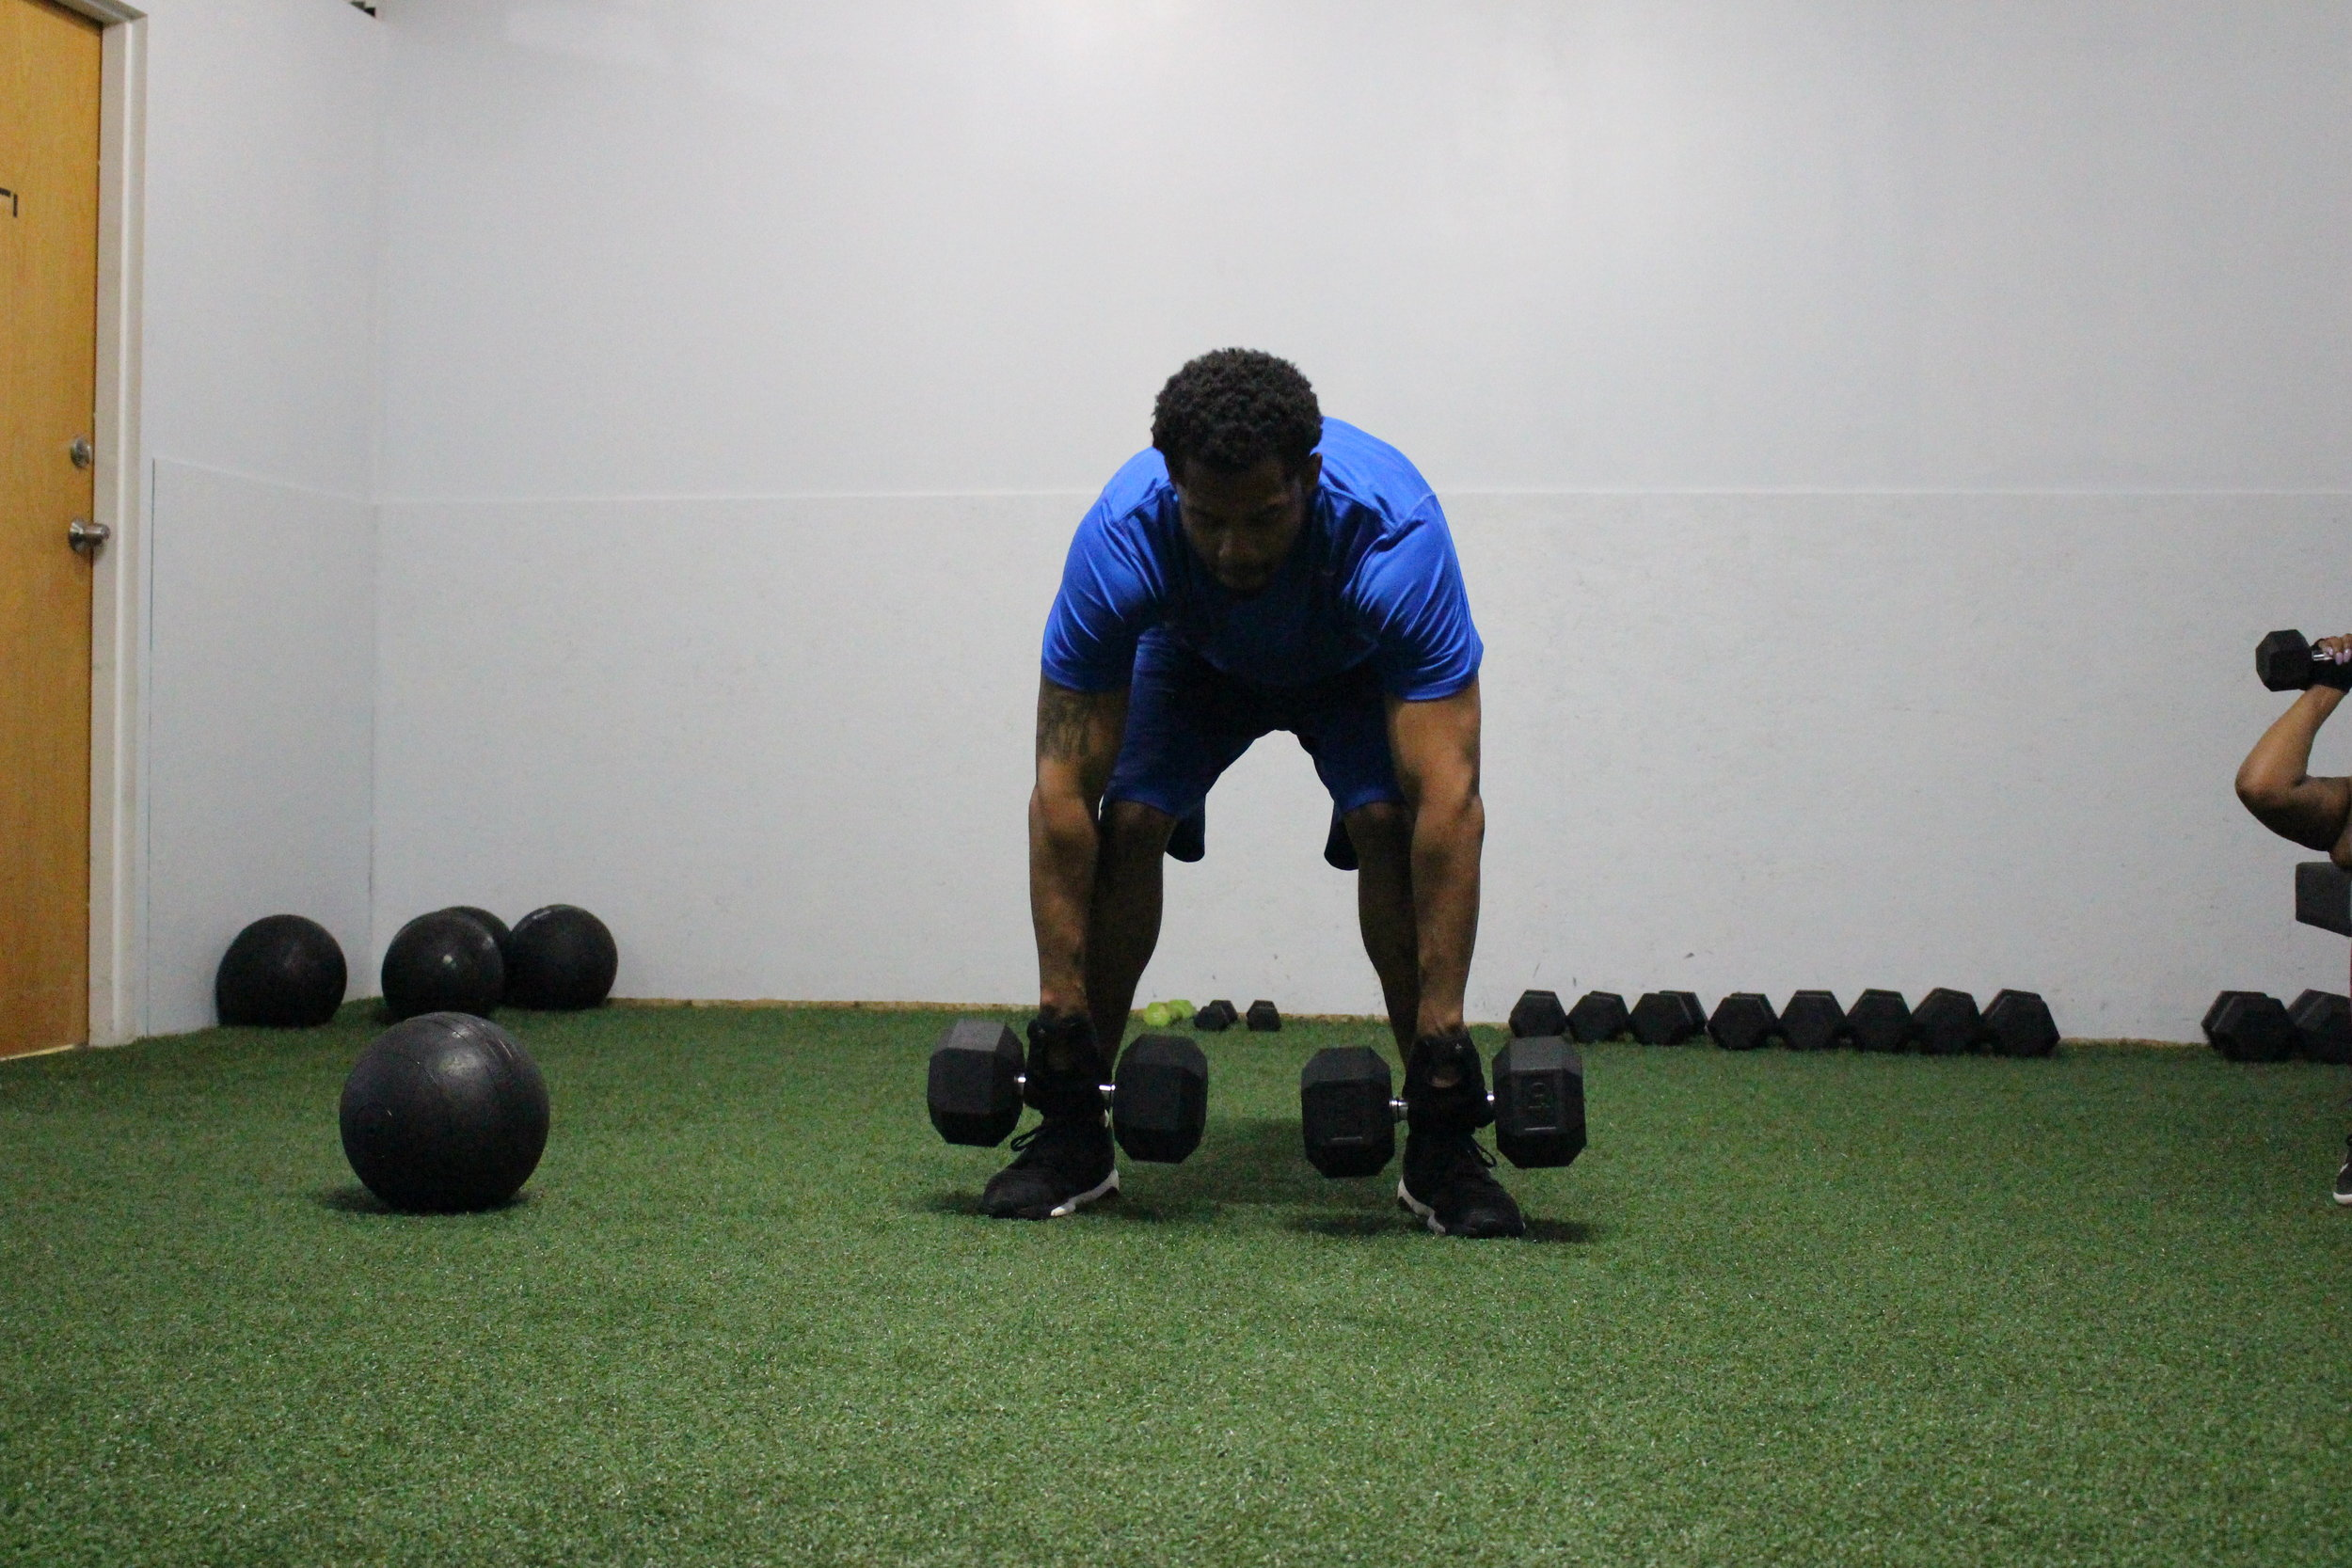 1 on 1 Training - Get to your goals quicker with personal training. We will make sure you are working as hard as you can, and then some. Personalized workouts are catered to you and your goals. Come prepared to have the body that you have always wanted!